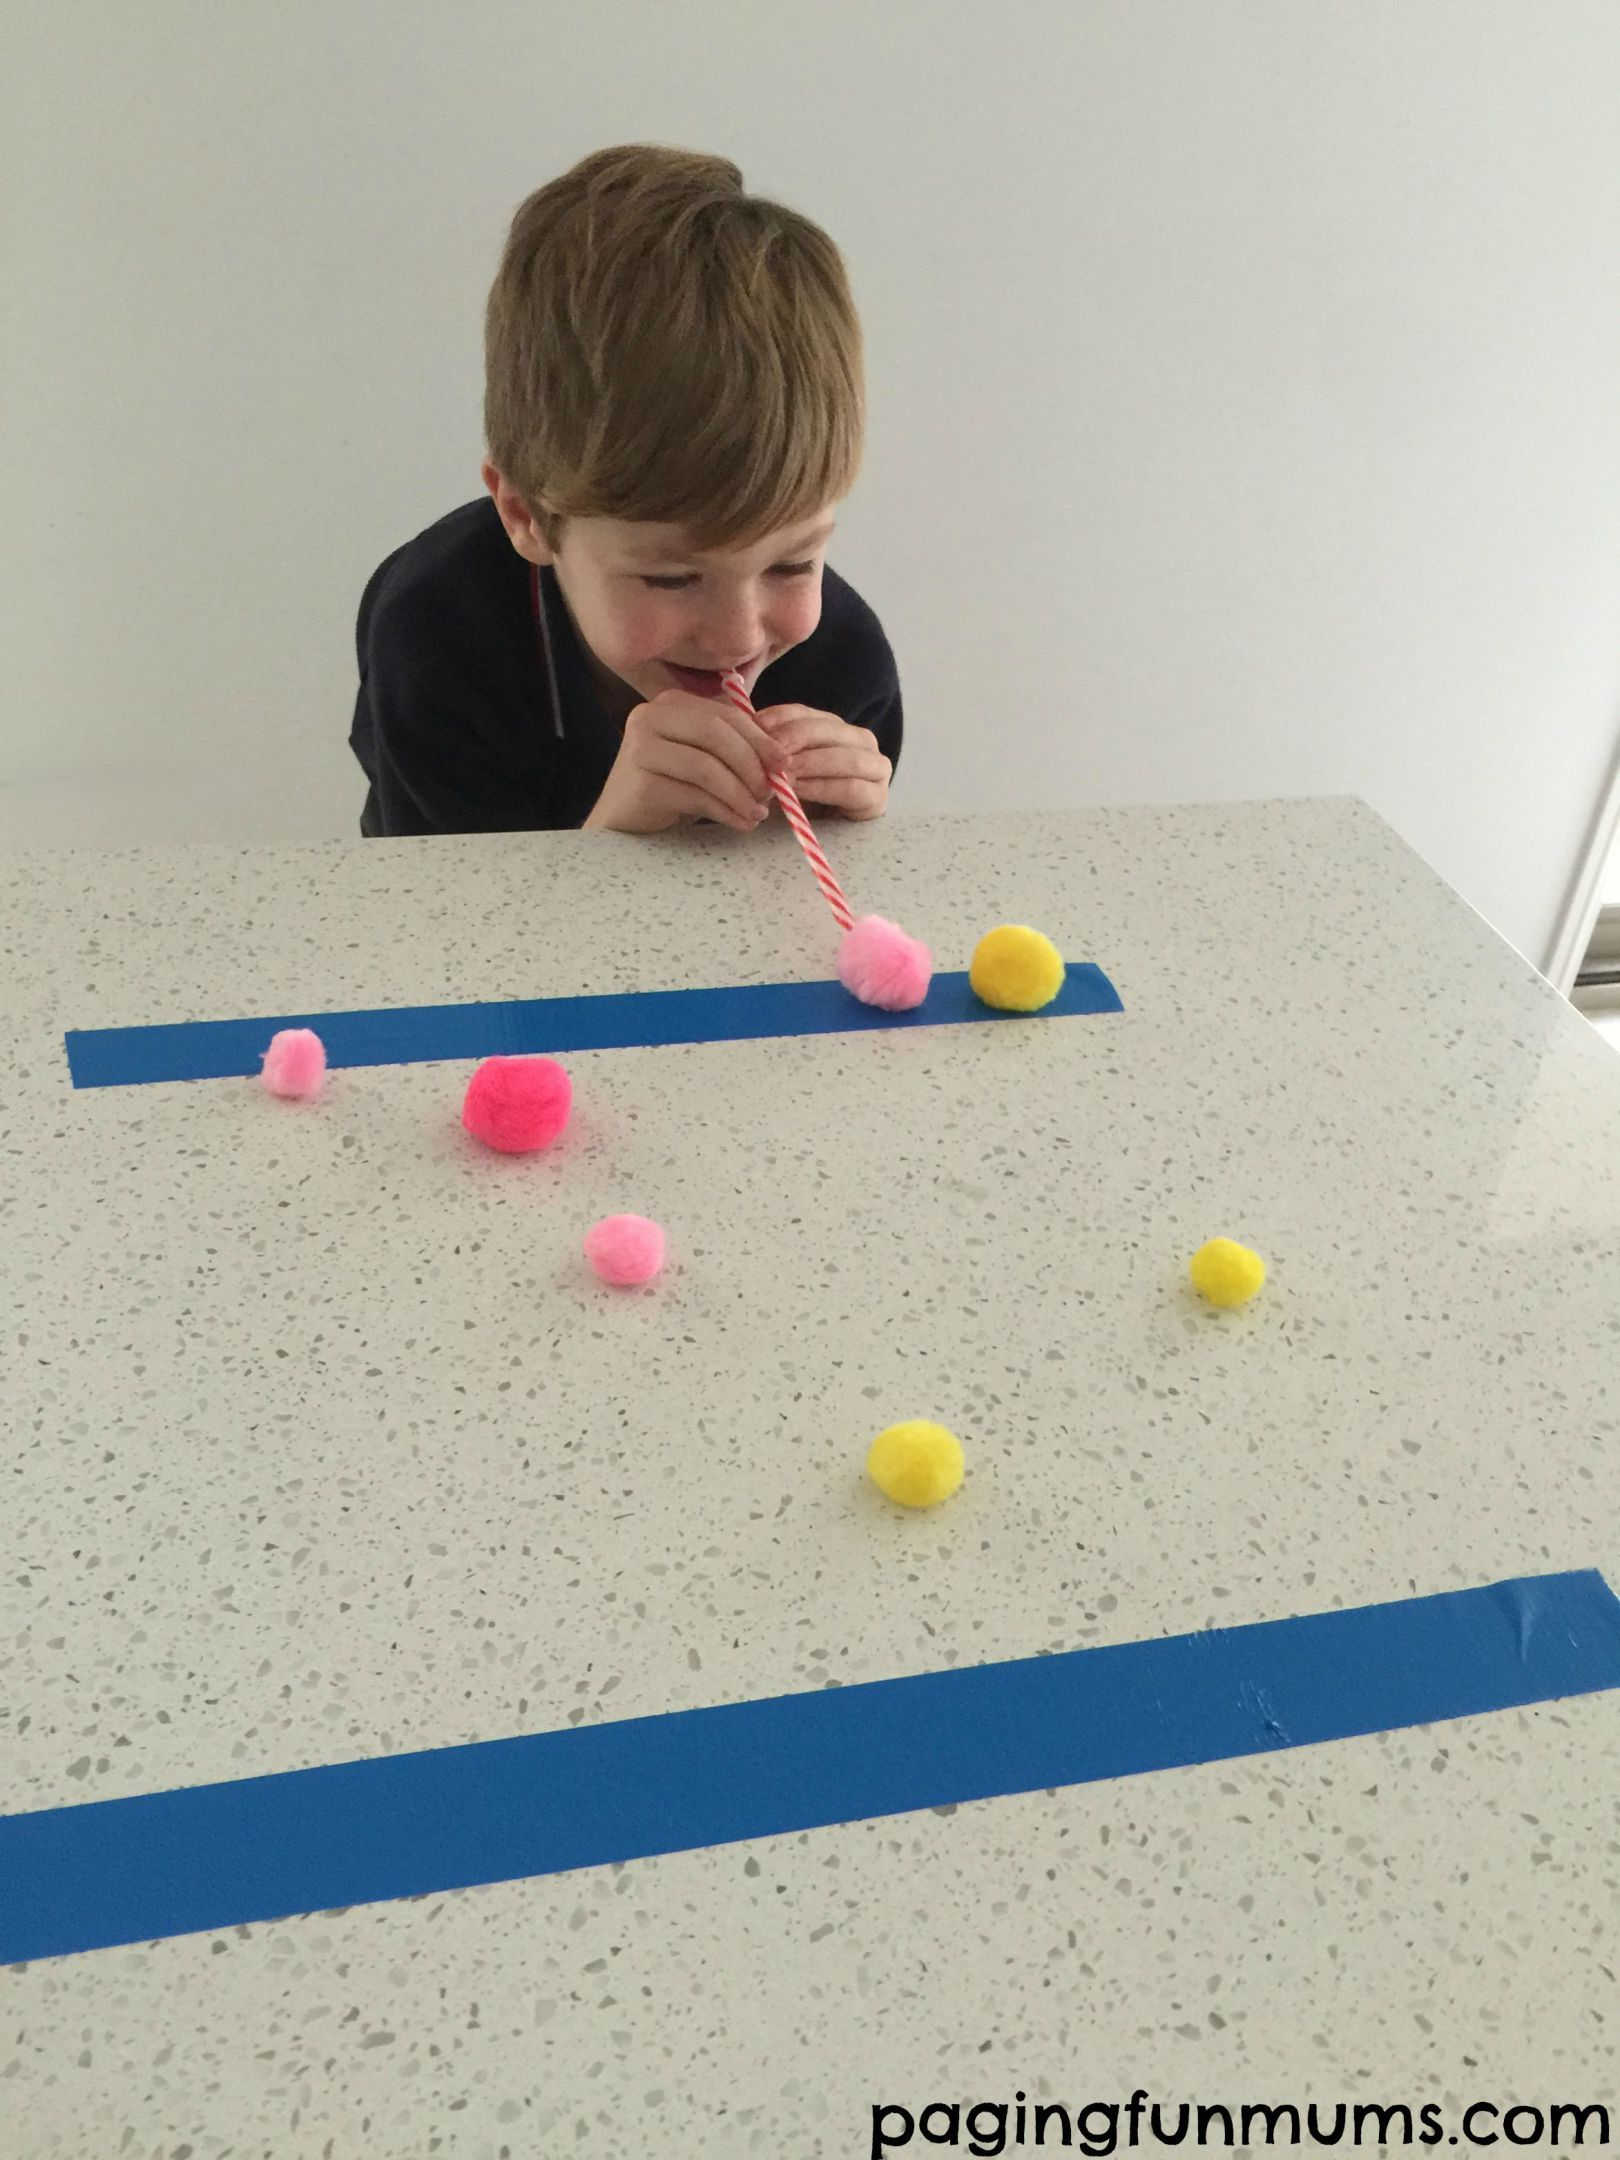 5 easy \'minute to win it\' games for kids | Pinterest | Gaming, Easy ...